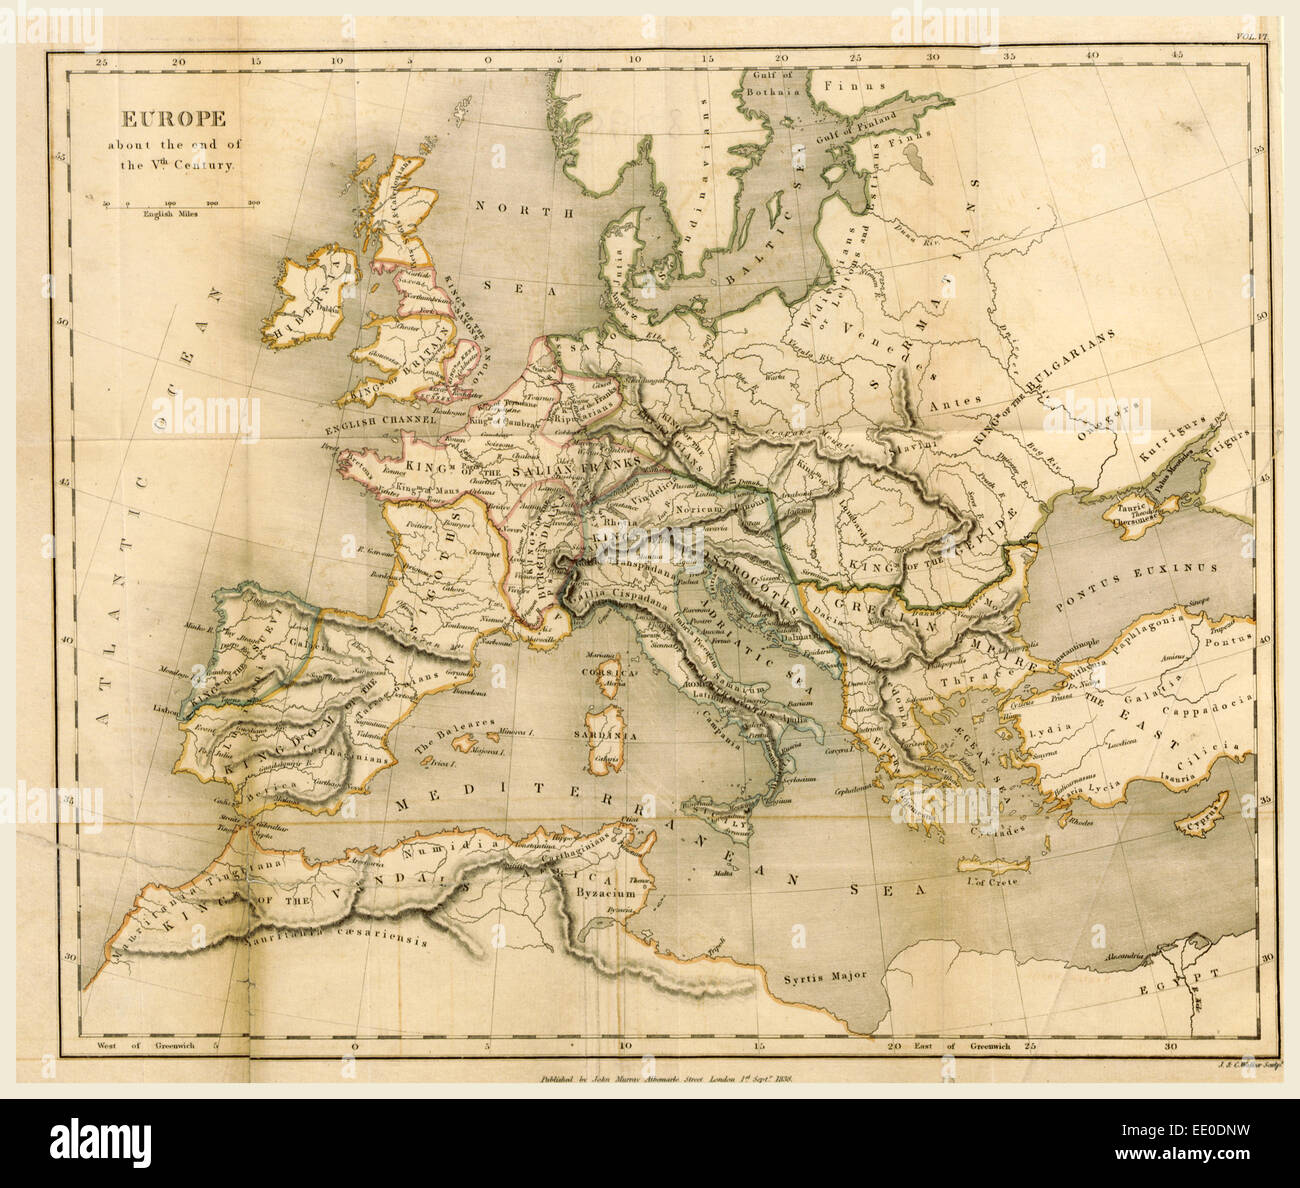 Europe 19th Century Map Stock Photos Europe 19th Century Map Stock